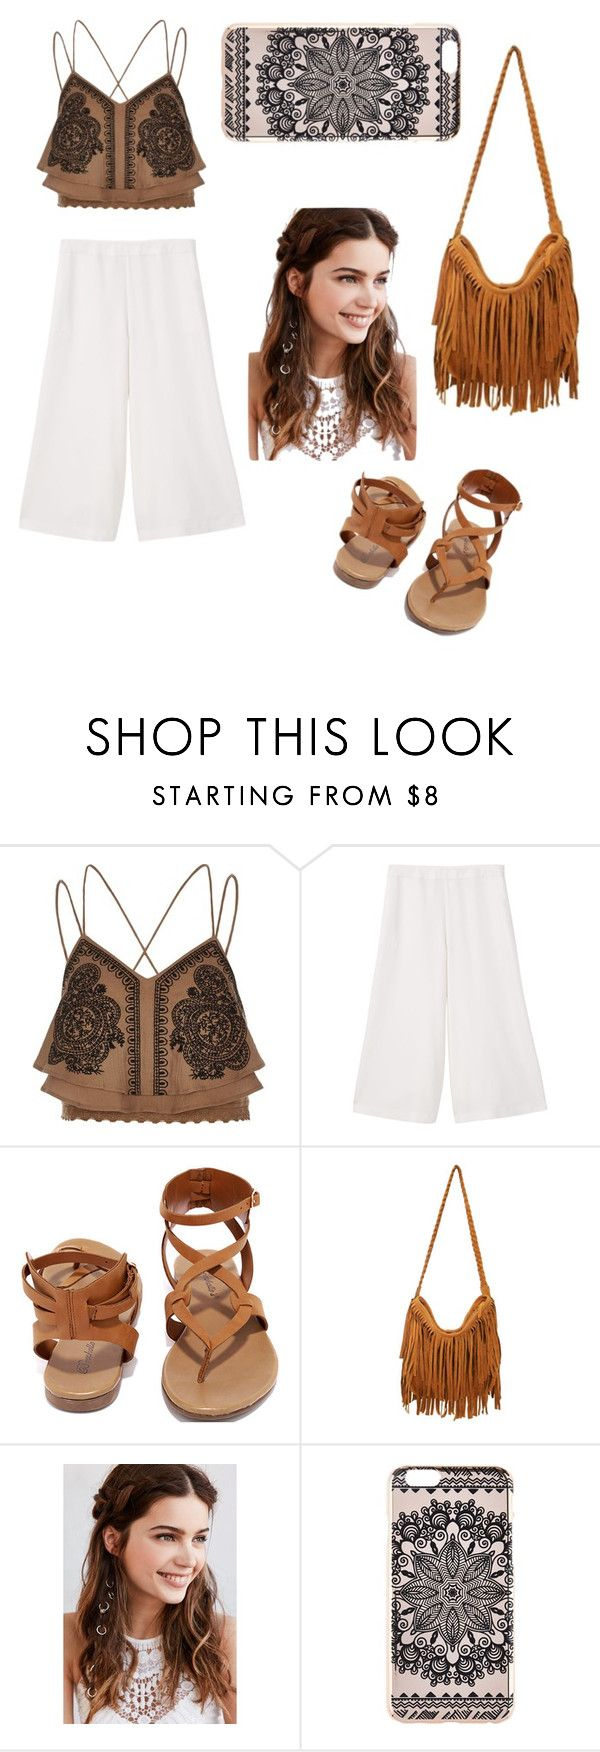 """""""Wear this when you're going to We The Fest! I really recommend it to you :)"""" by northwinddd ❤ liked on Polyvore featuring River Island, MANGO, Breckelle's, REGALROSE, New Look, bandtshirt, bandtee, whenyougoto and WeTheFest"""